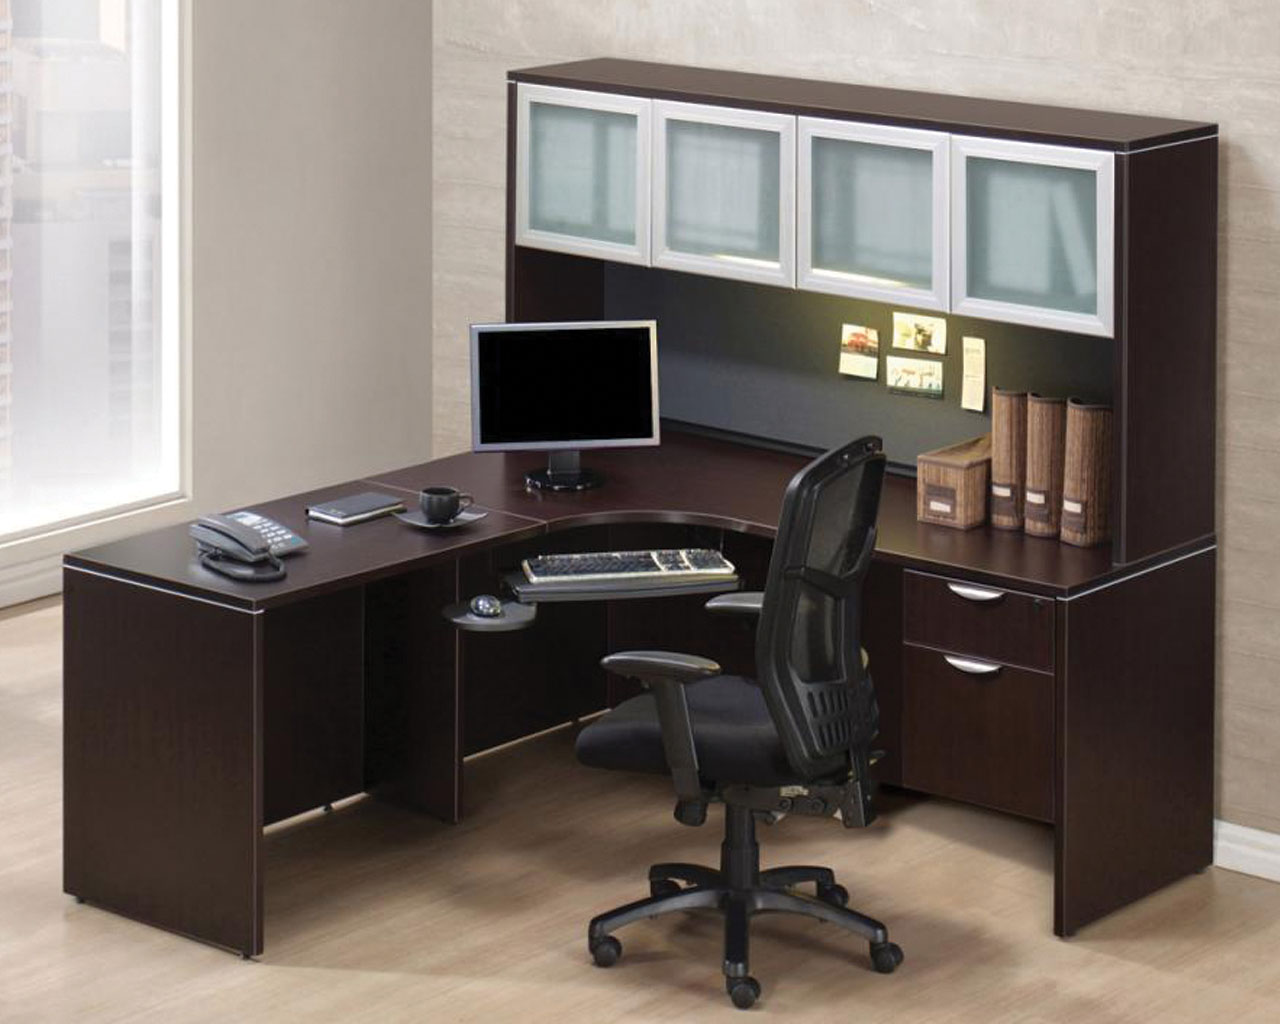 Charmant Classic L Shaped Corner Desk With A 3/4 Box/File Pedestal And